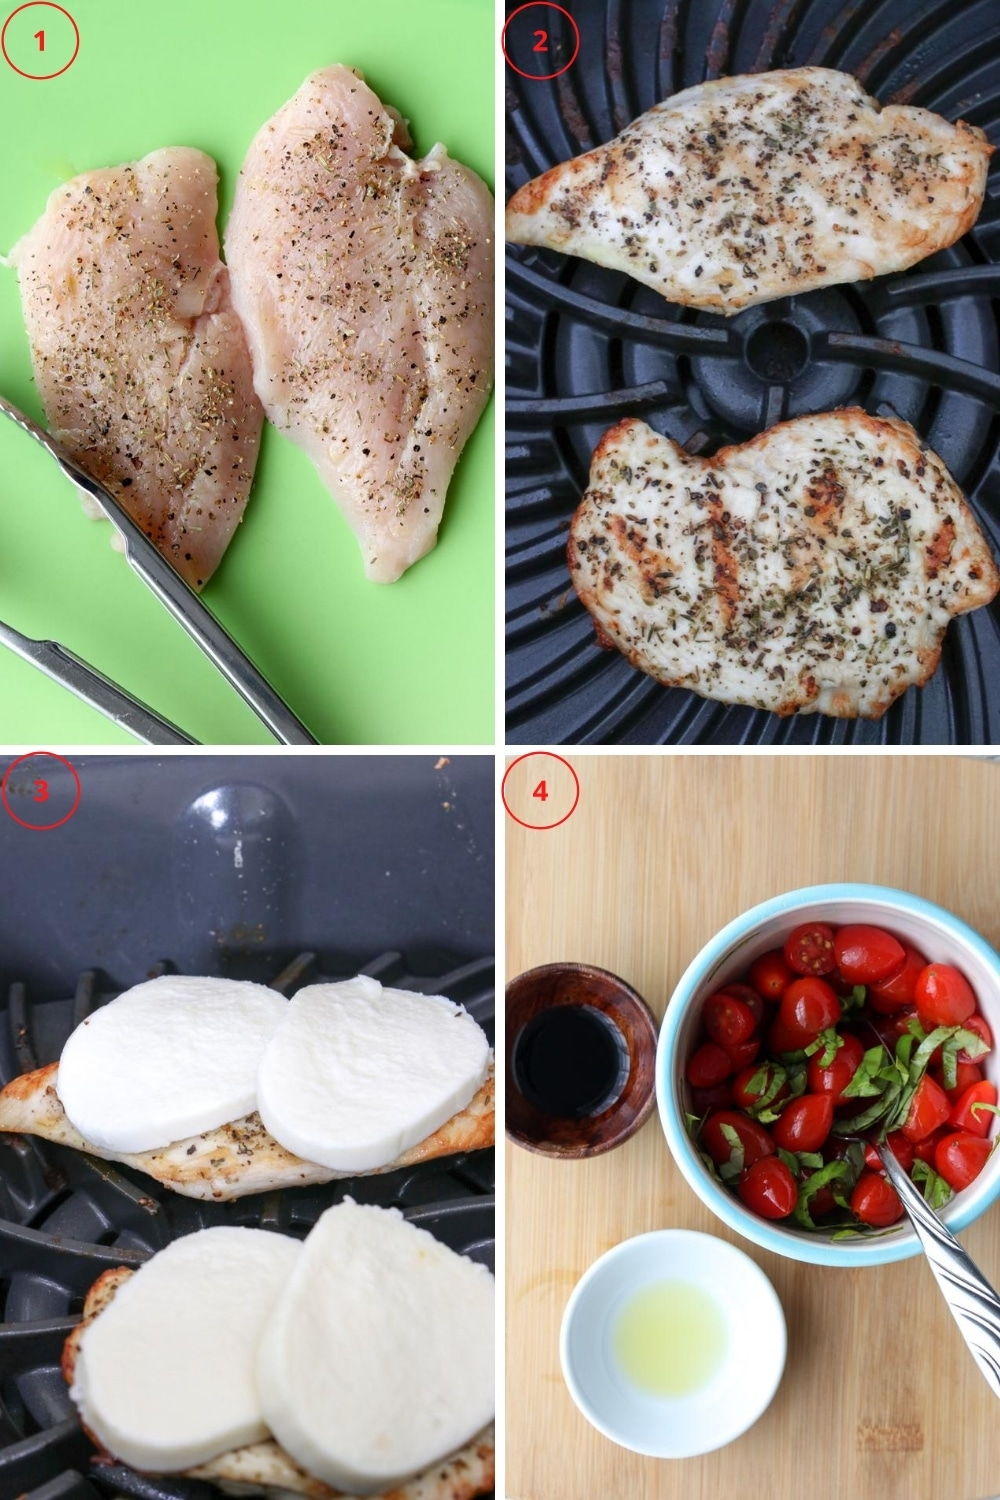 Photo showing the steps to make grilled chicken capers